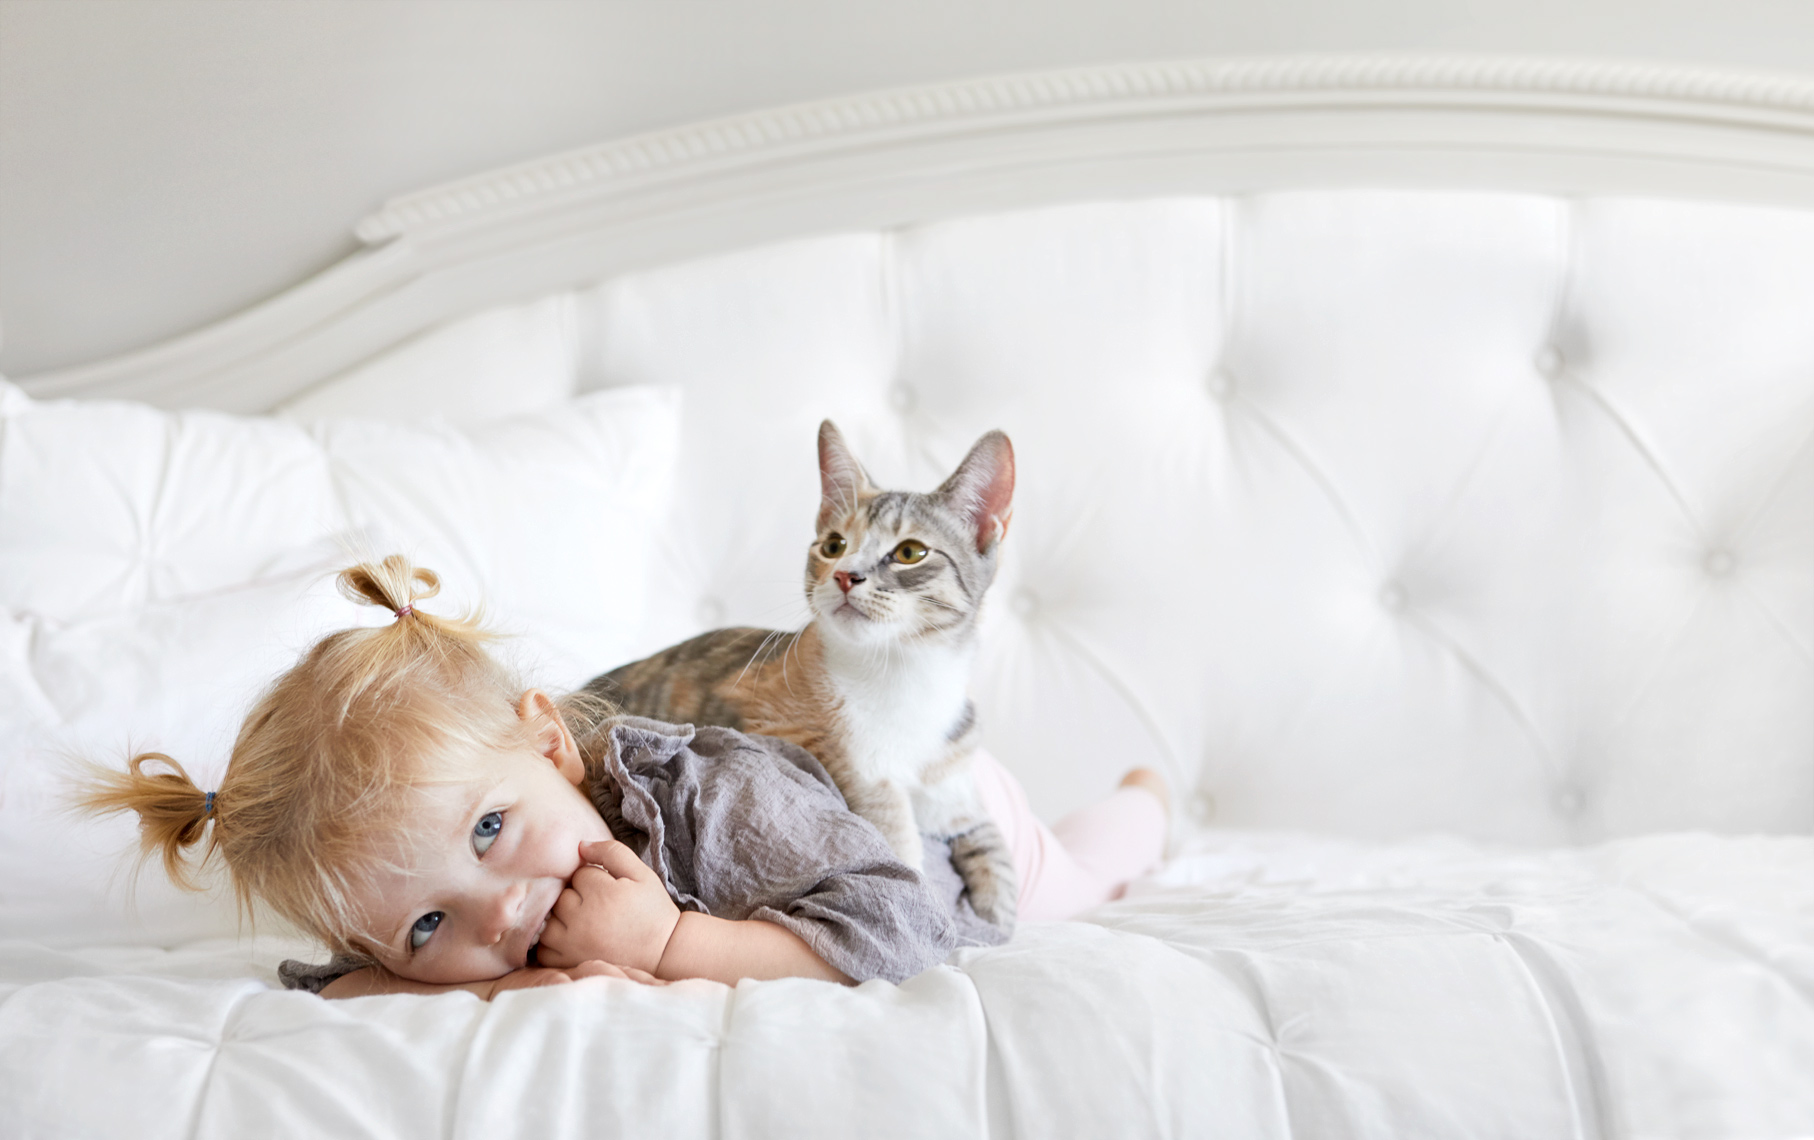 Toddler on bed with kitten